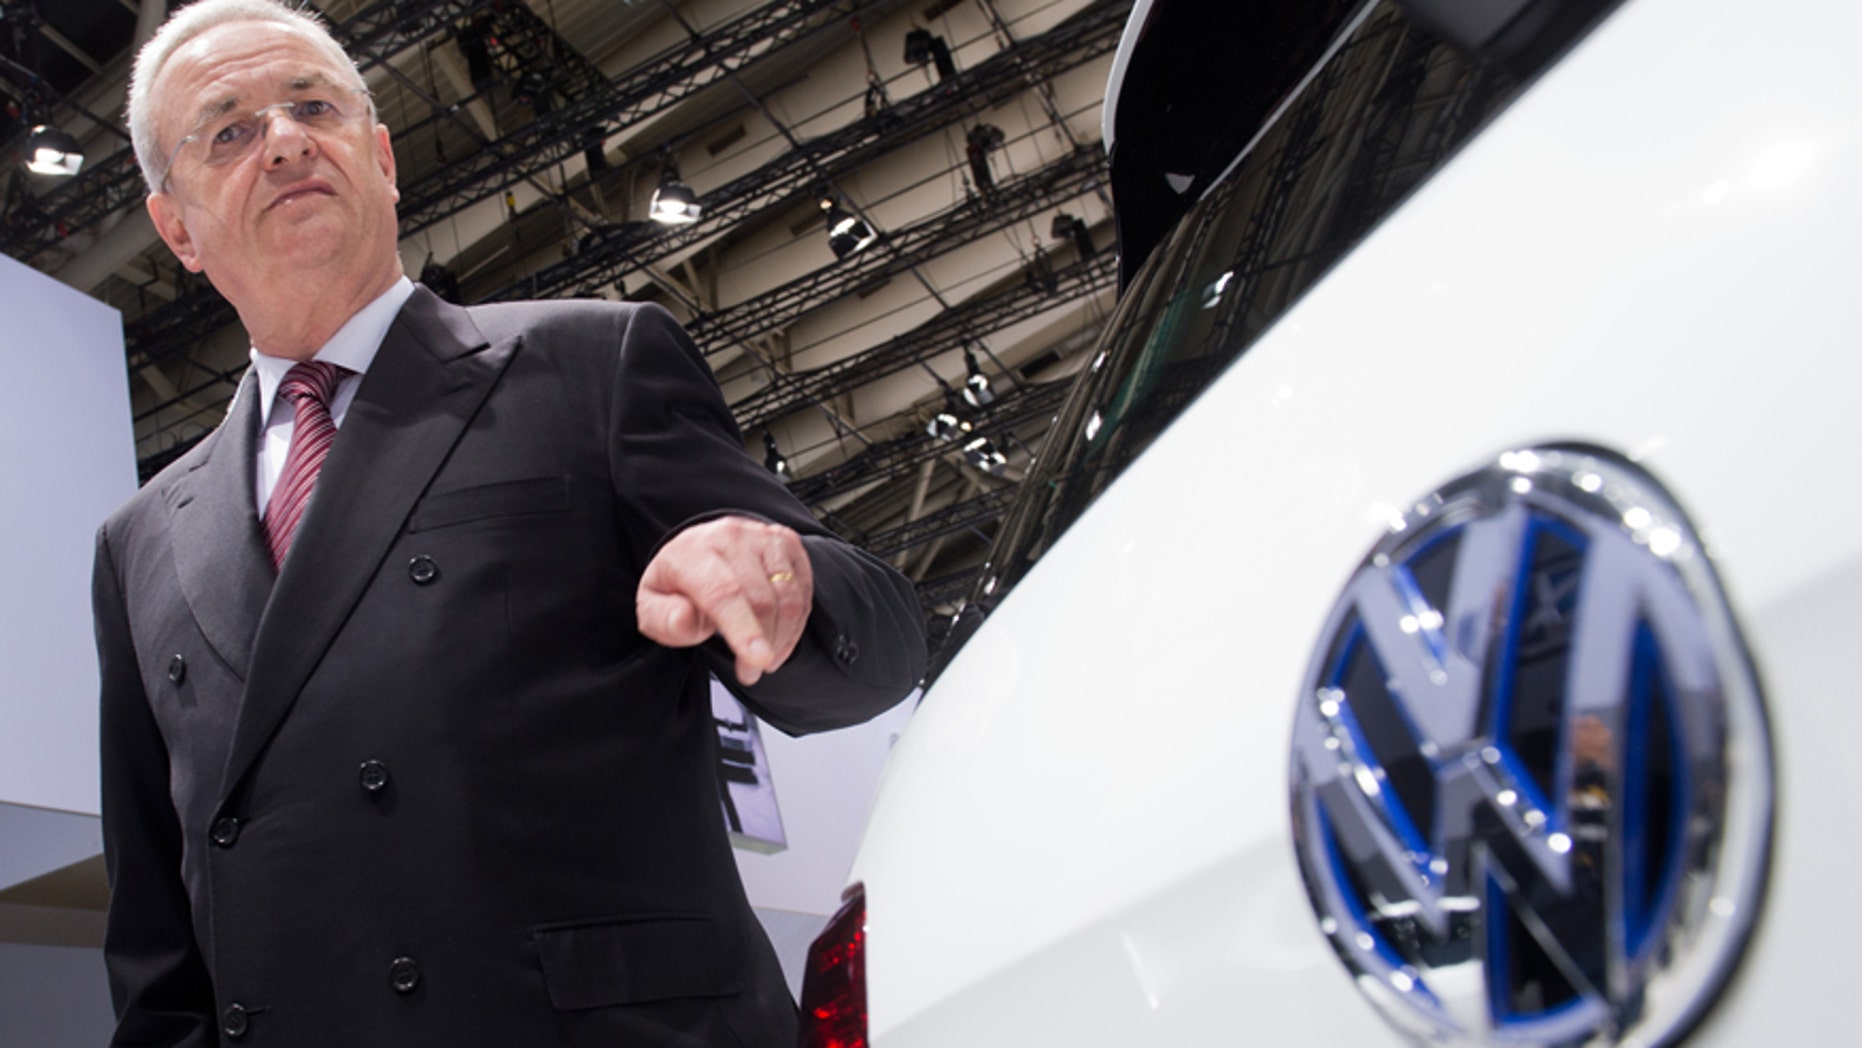 FILE  In this May 13, 2014 file picture then Volkswagen CEO , Martin Winterkorn, stands next to a VW car  at the annual shareholder meeting in Hannover, Germany.   German prosecutors said Monday June 20, 2016  they have opened an investigation of former Volkswagen CEO Martin Winterkorn on allegations of market manipulation in connection with the company's scandal over cars rigged to cheat on U.S. diesel emissions tests.  ( Julian Stratenschulte/dpa via AP,file)